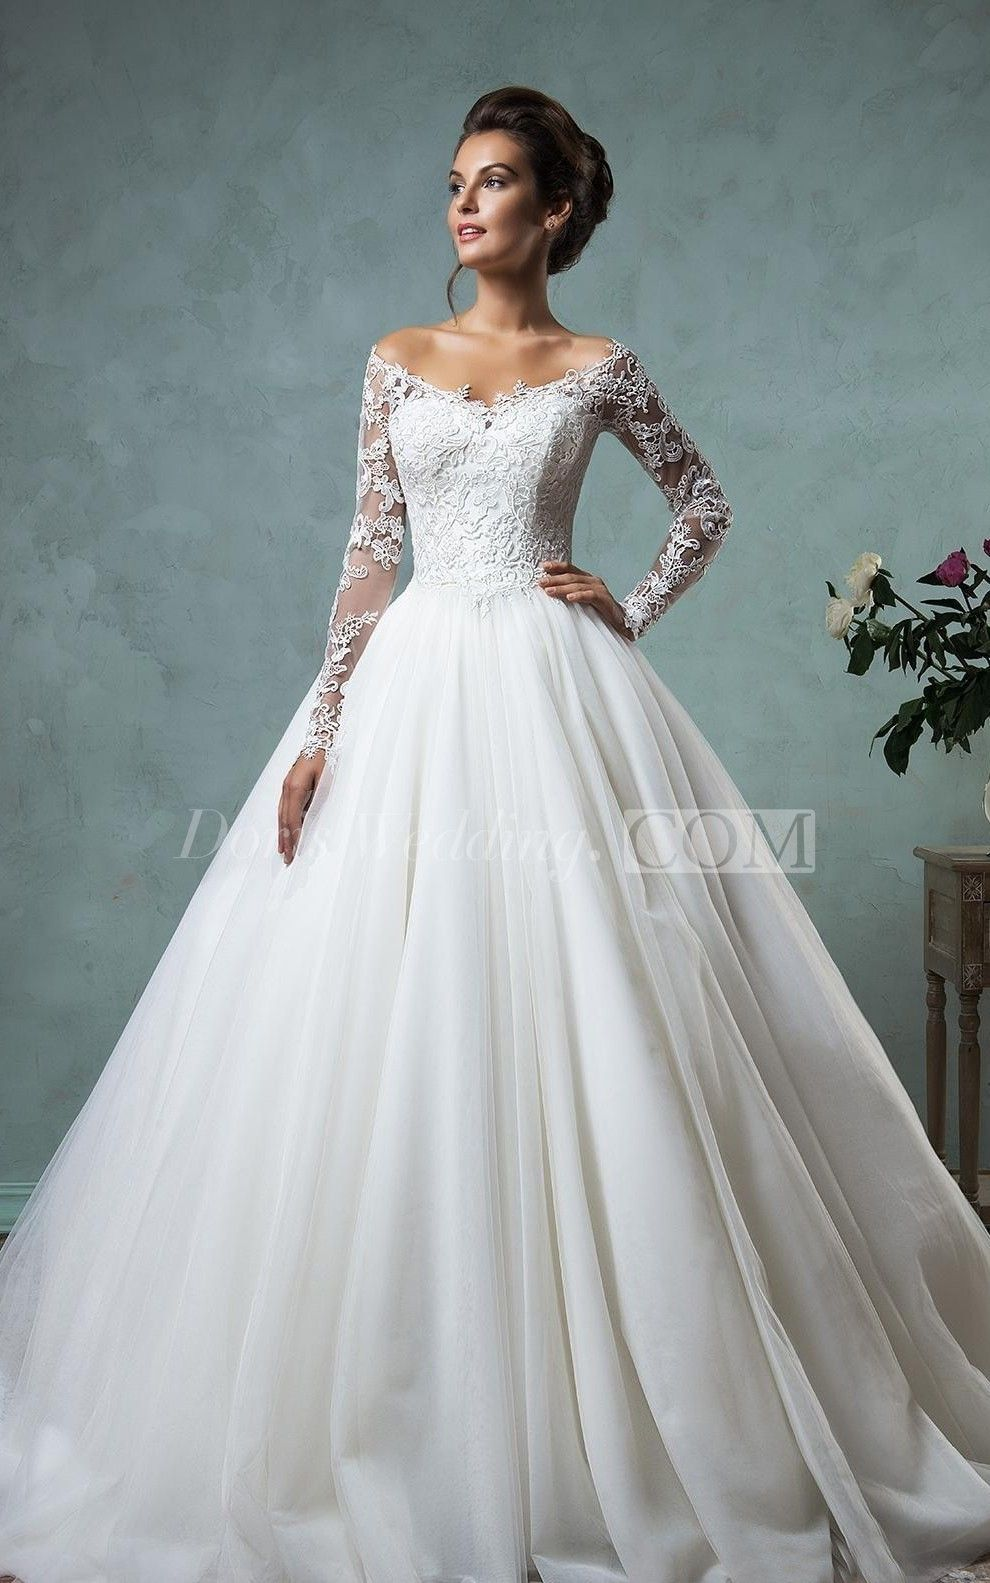 3f54b663d1 US$191.59-Sexy Off the Shoulder Lace Ball Gown Wedding Dress with Sleeves.  https